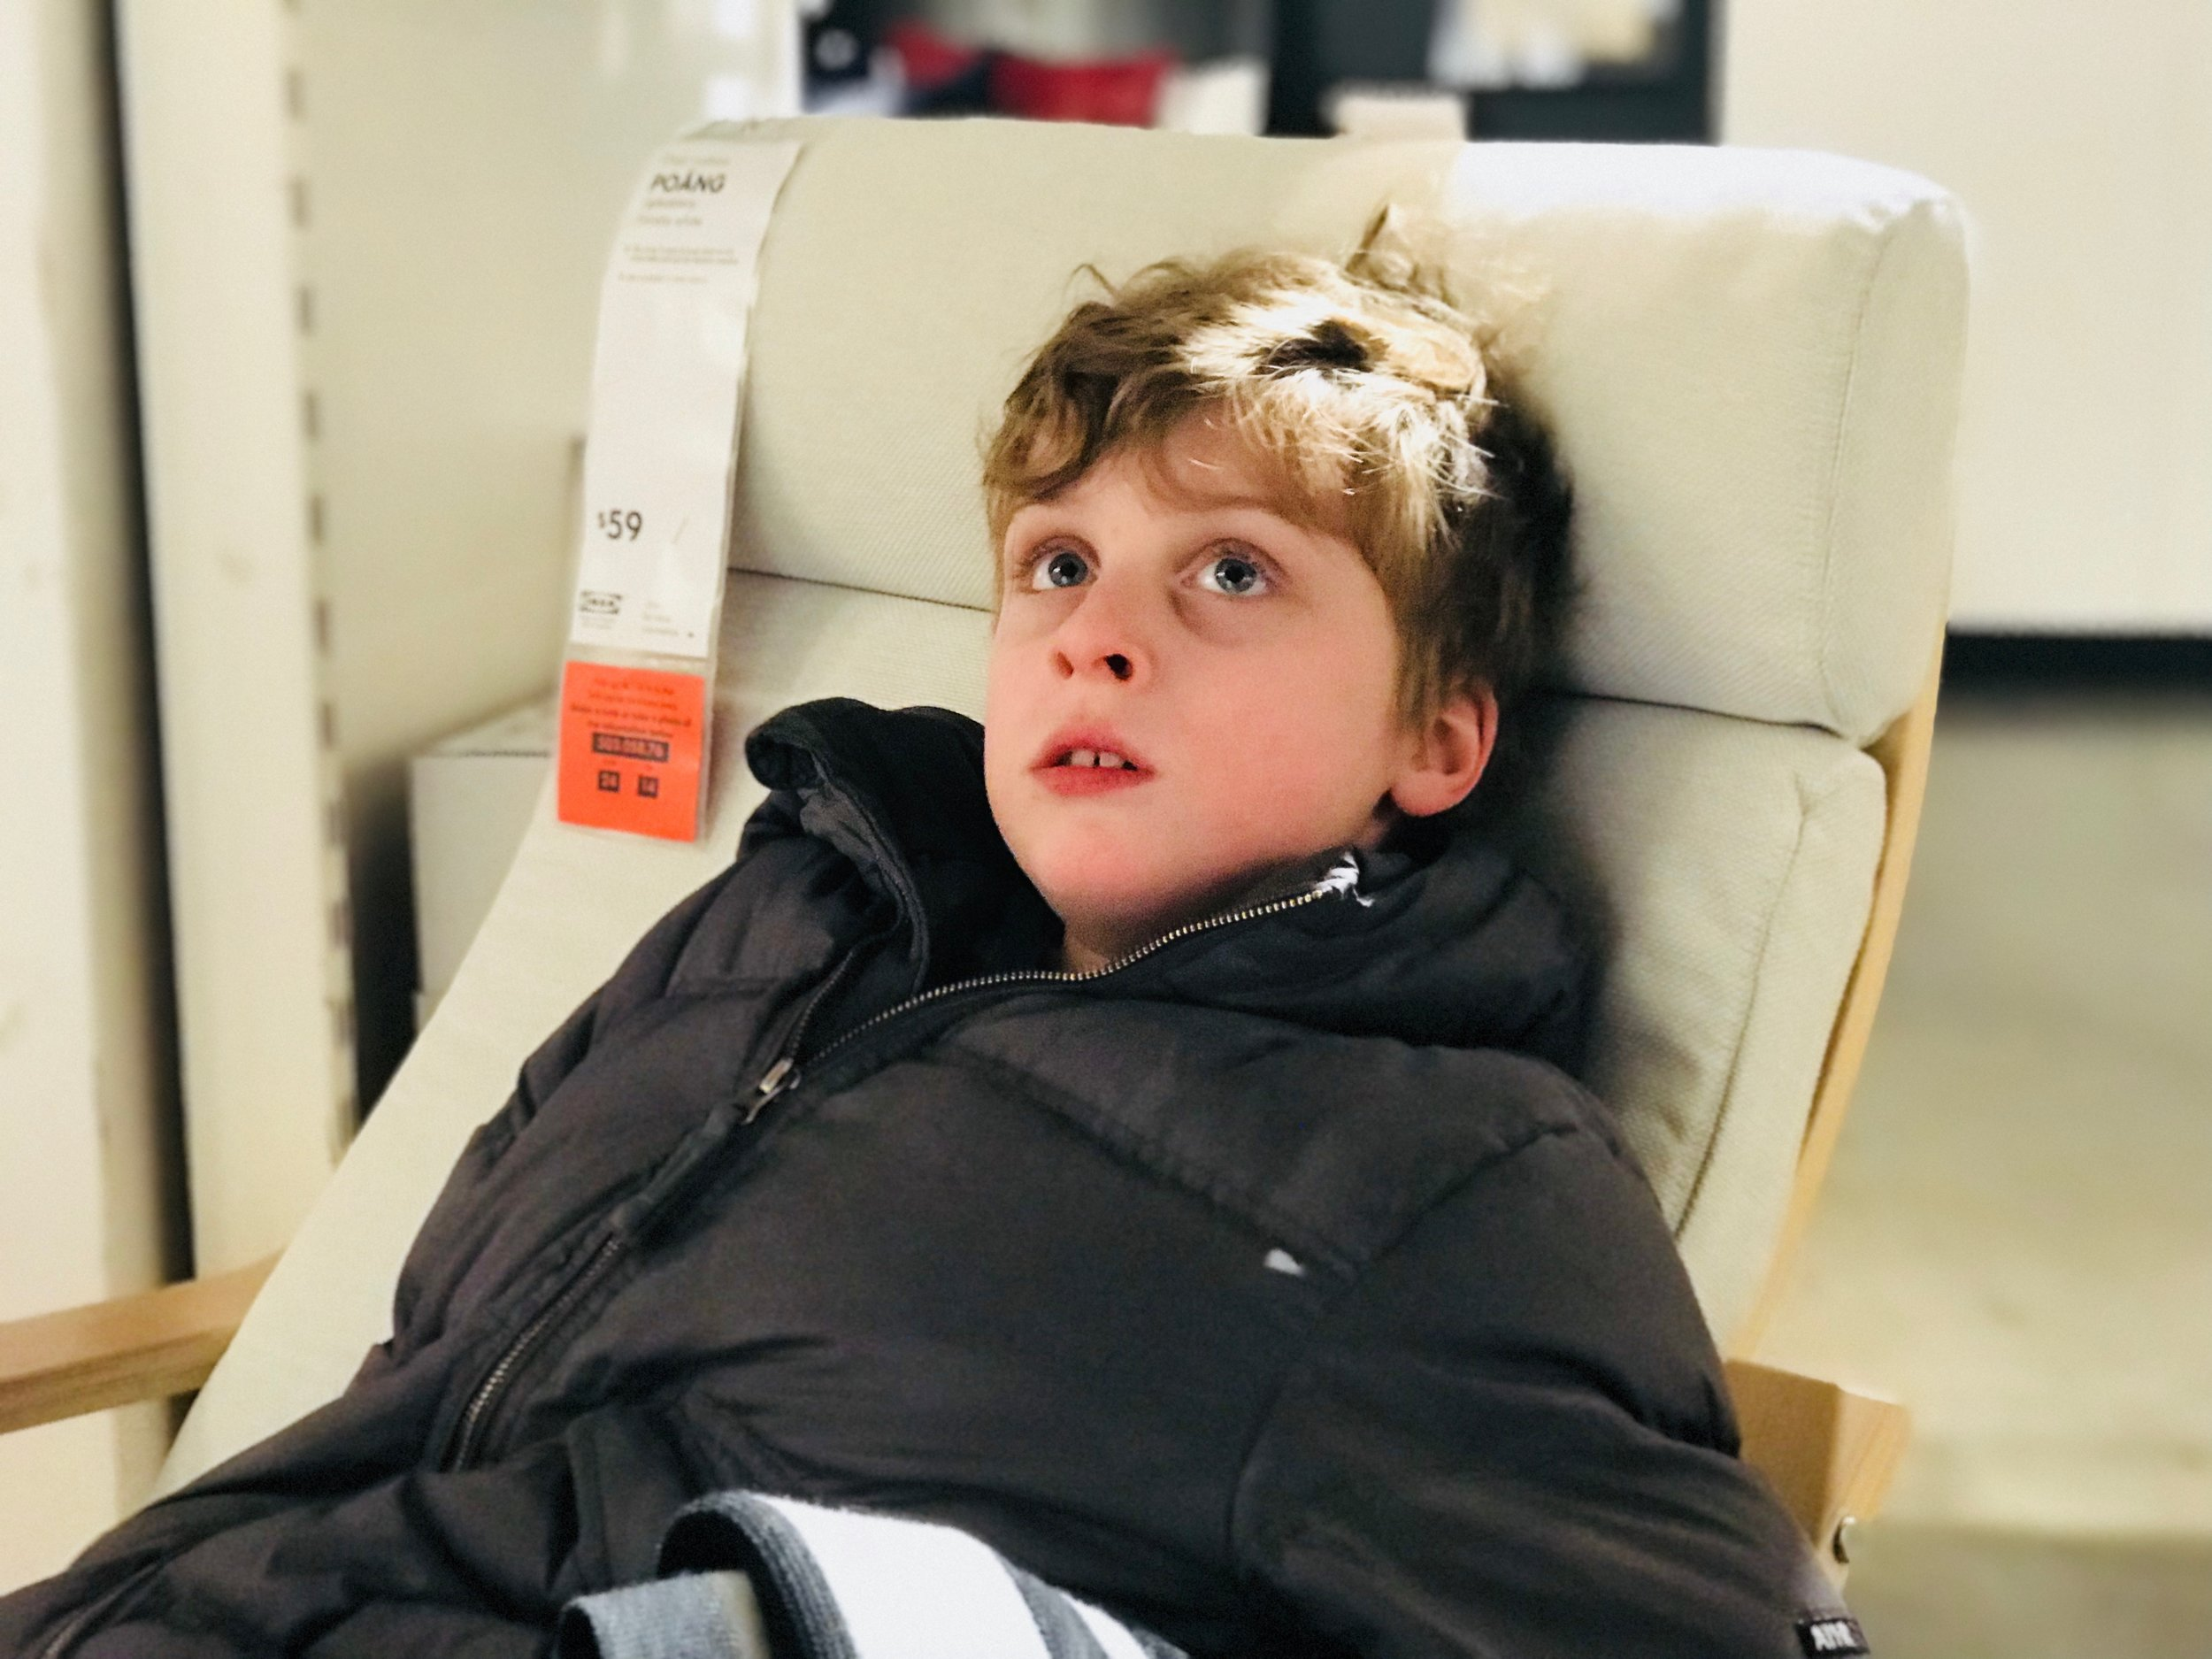 C, a young autistic boy, sits on a chair in an Ikea store, enjoying a relative moment of calm.